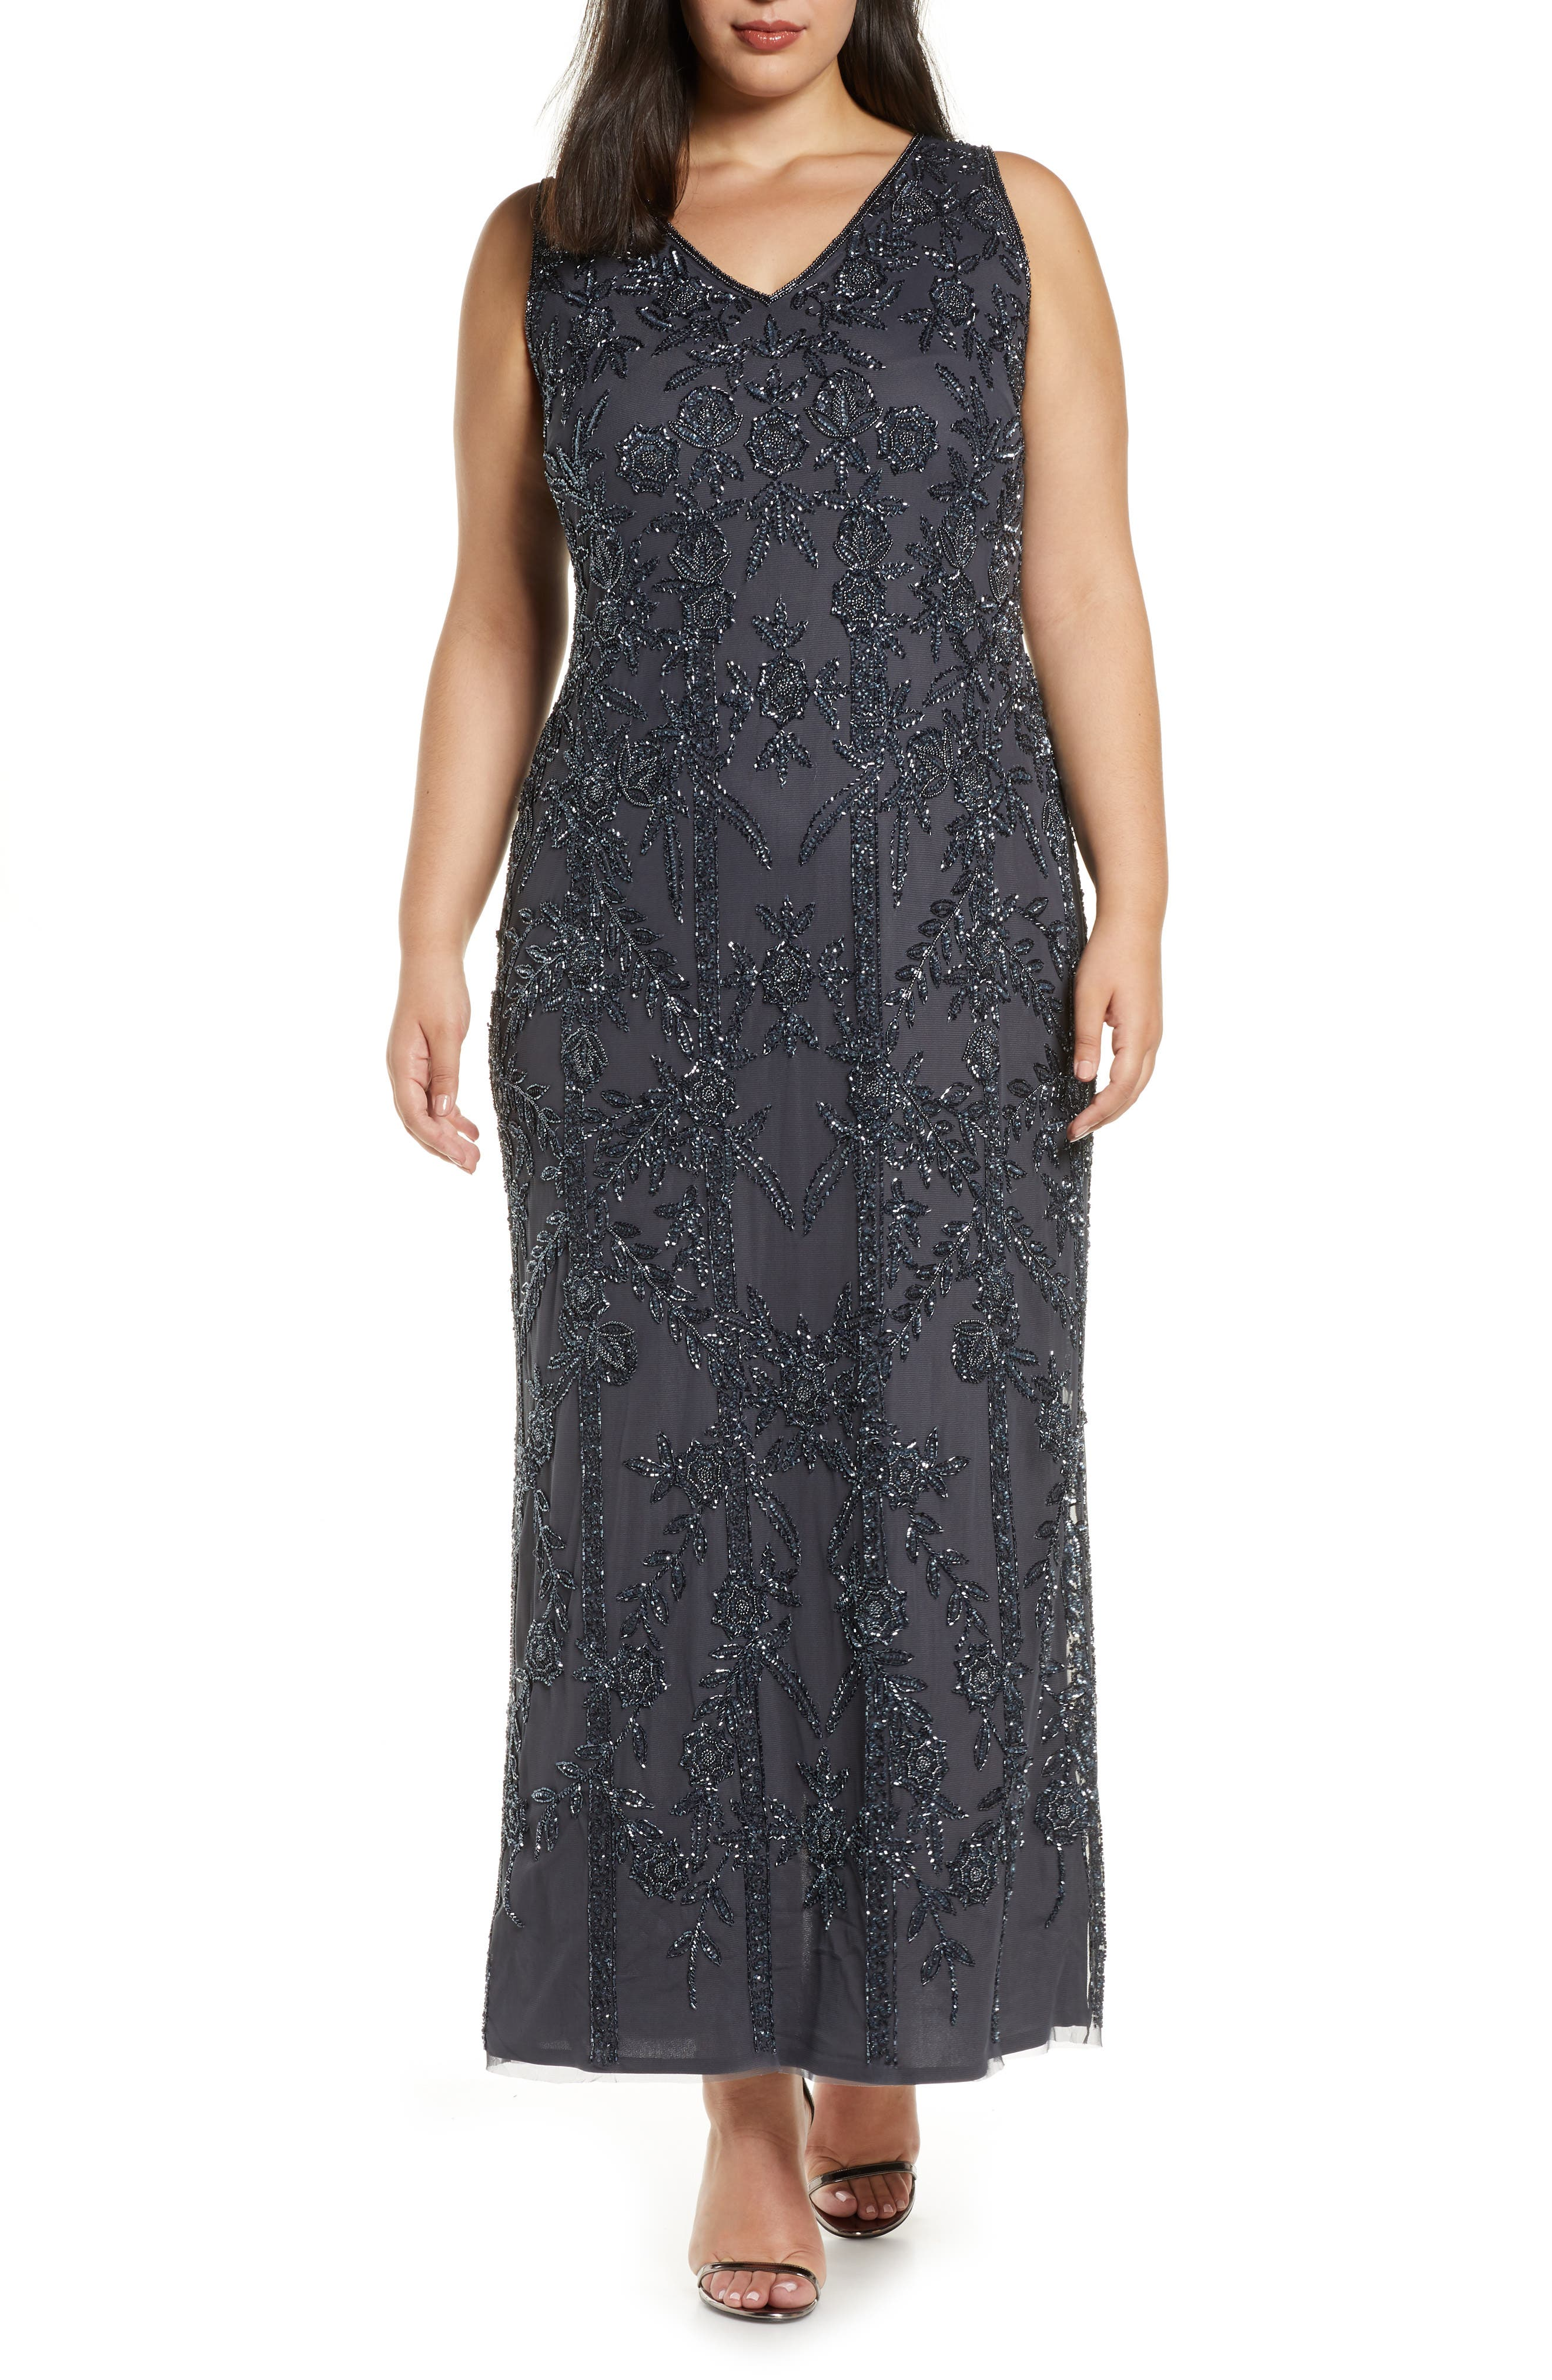 1920s Plus Size Flapper Dresses, Gatsby Dresses, Flapper Costumes Plus Size Womens Pisarro Nights Beaded Mesh Gown $248.00 AT vintagedancer.com